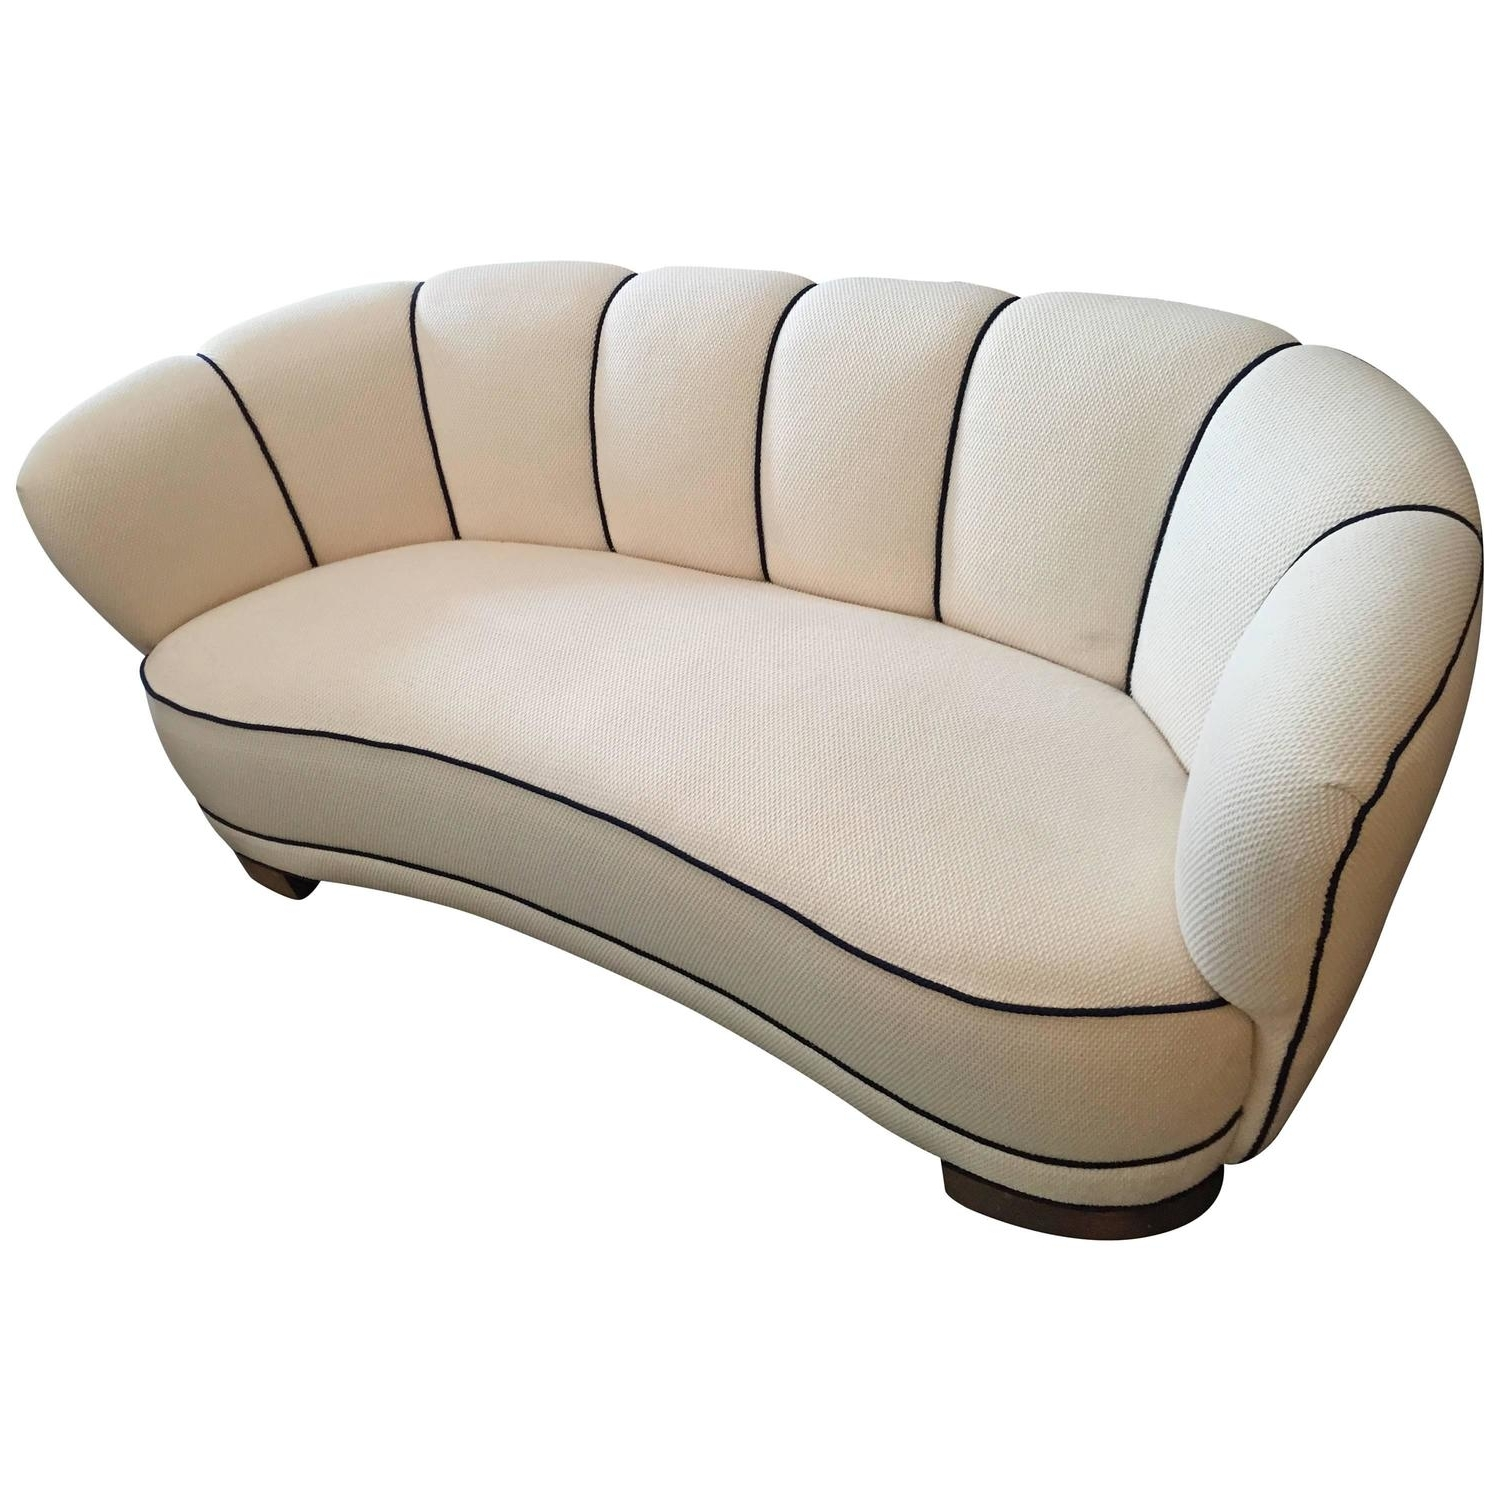 Famous Art Deco Sofas Pertaining To Amazing Art Deco Sofa 66 On Sofa Design Ideas With Art Deco Sofa (View 2 of 15)